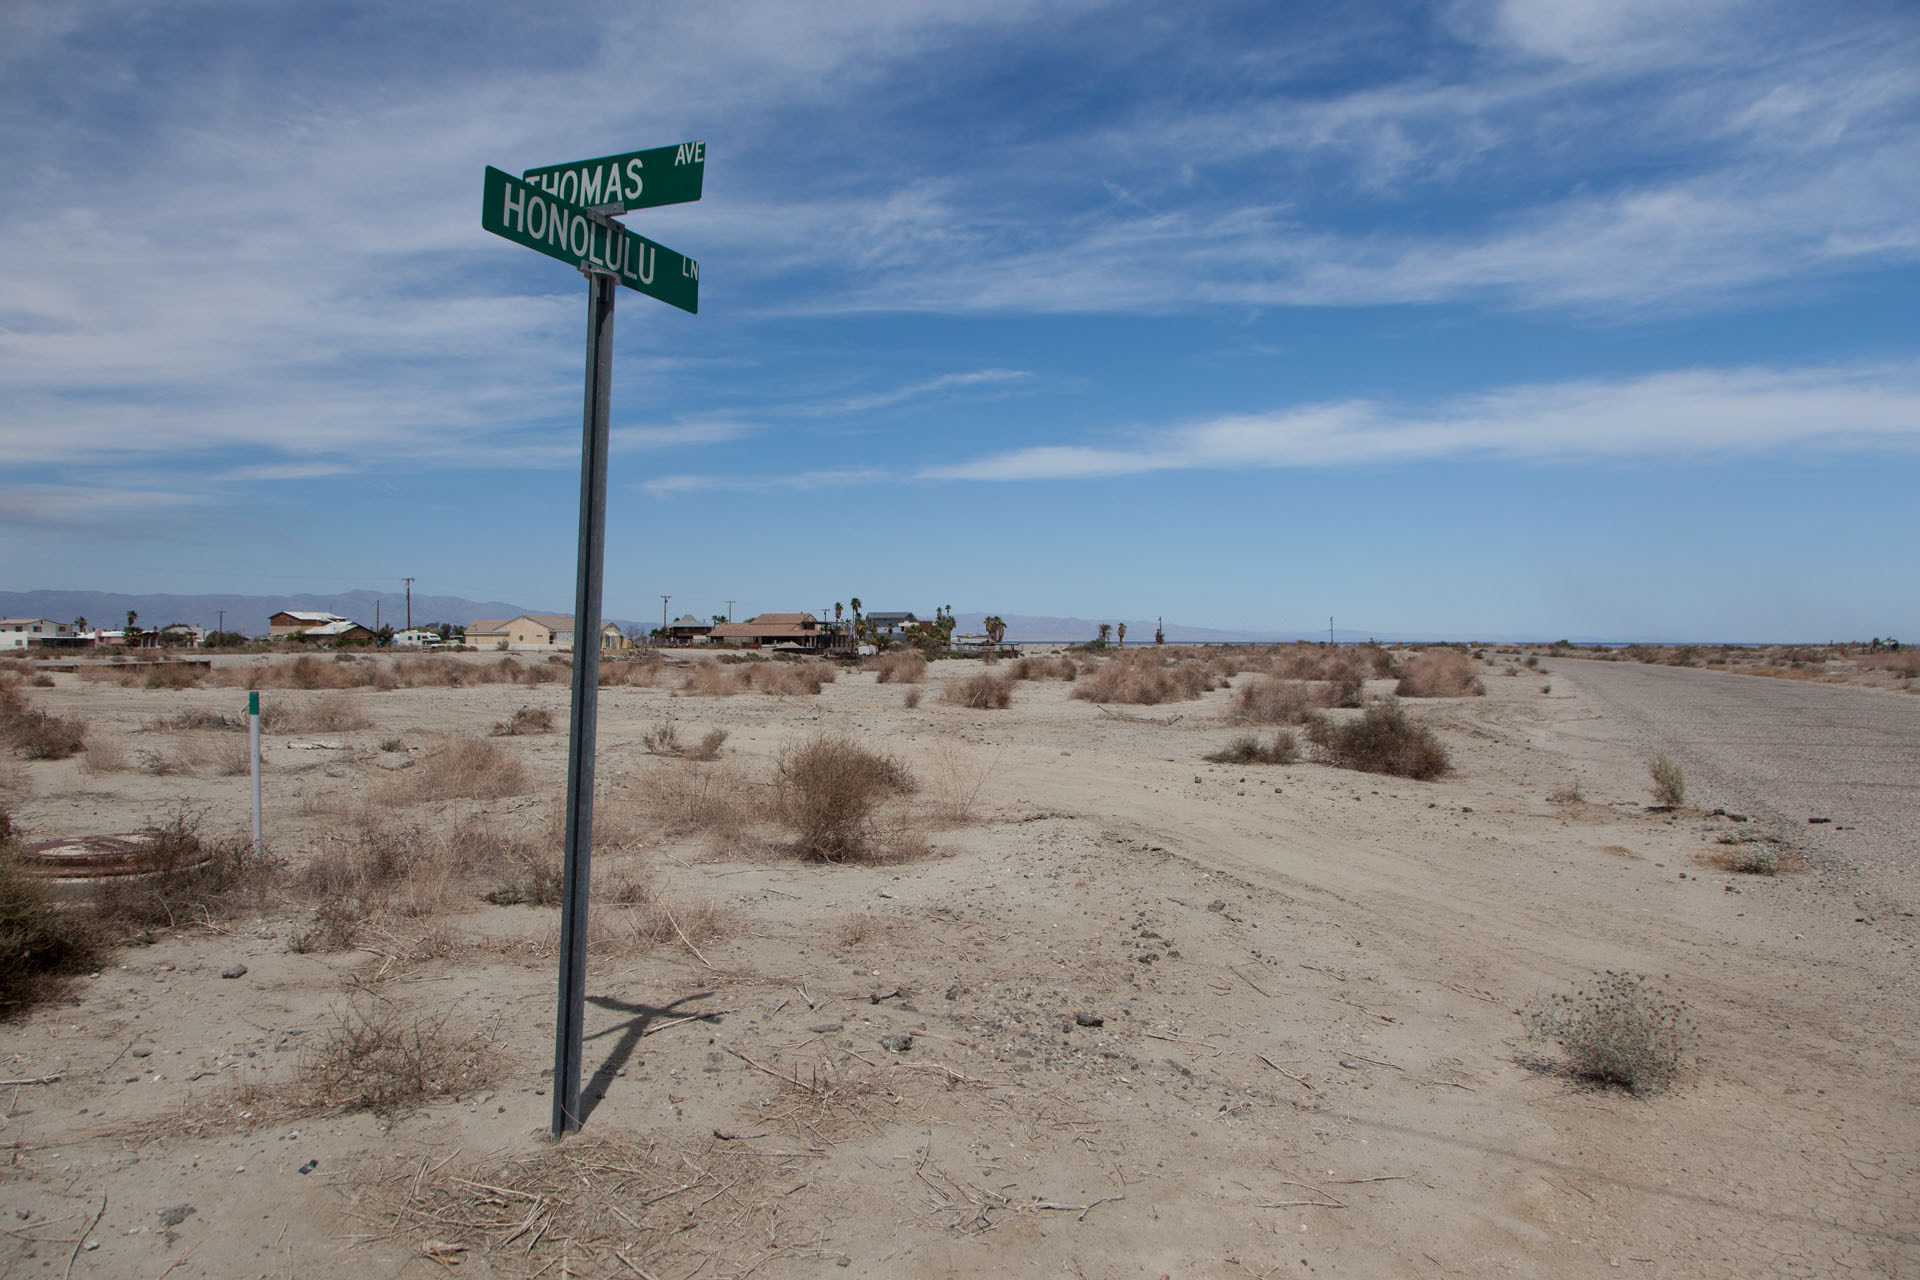 Honolulu Lane, Salton City